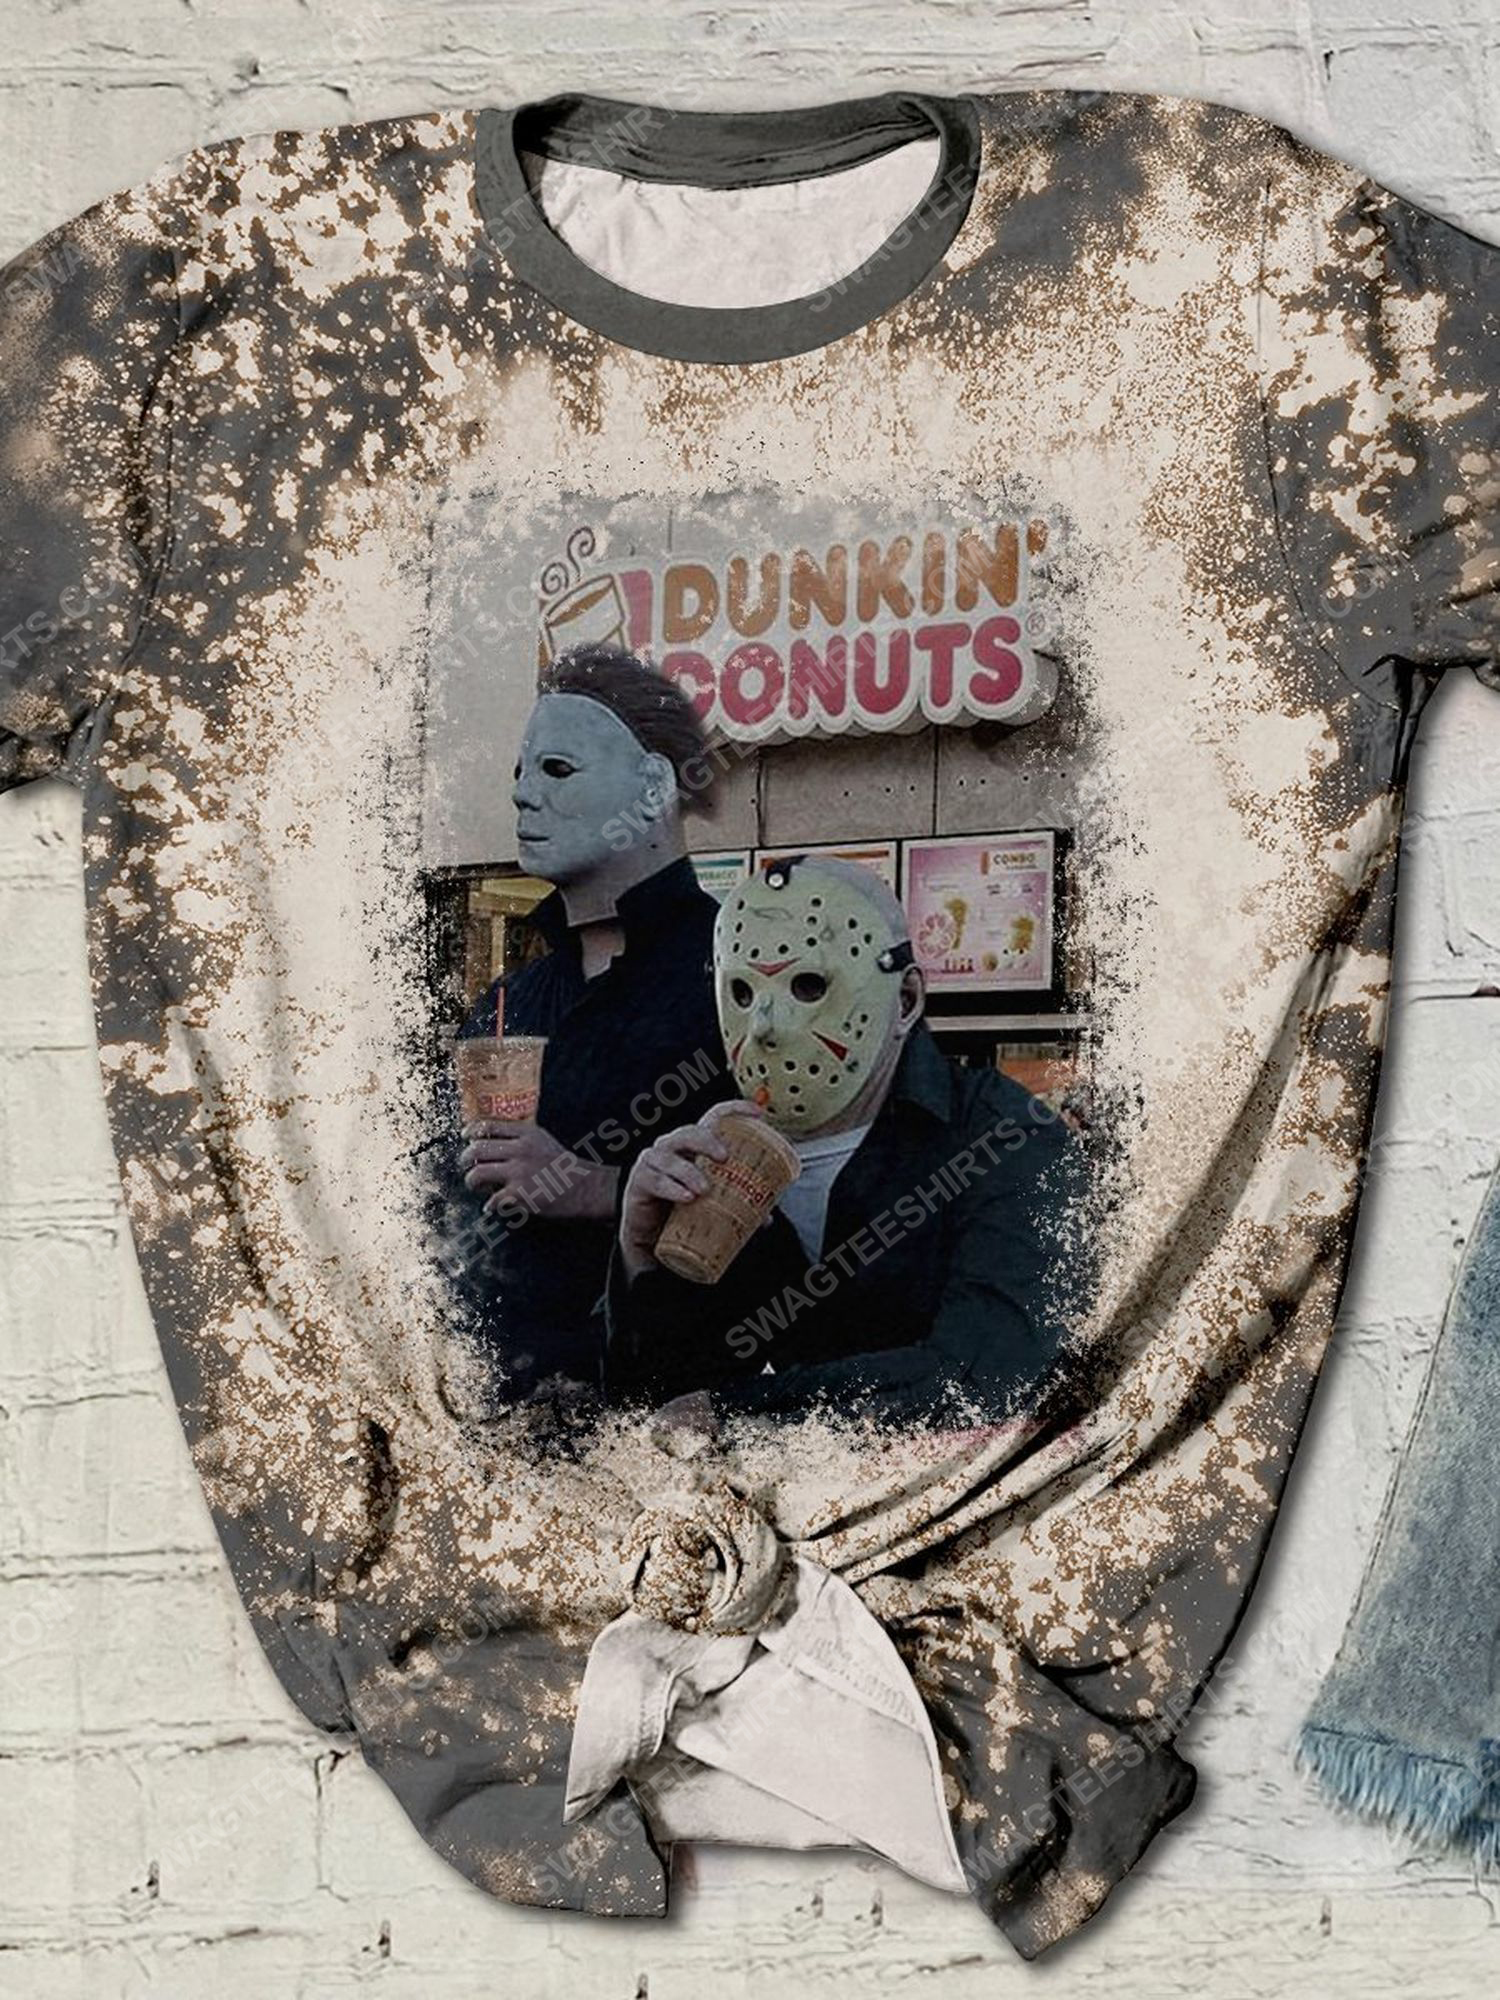 Halloween horror movie characters dunkin donuts bleached shirt 1 - Copy